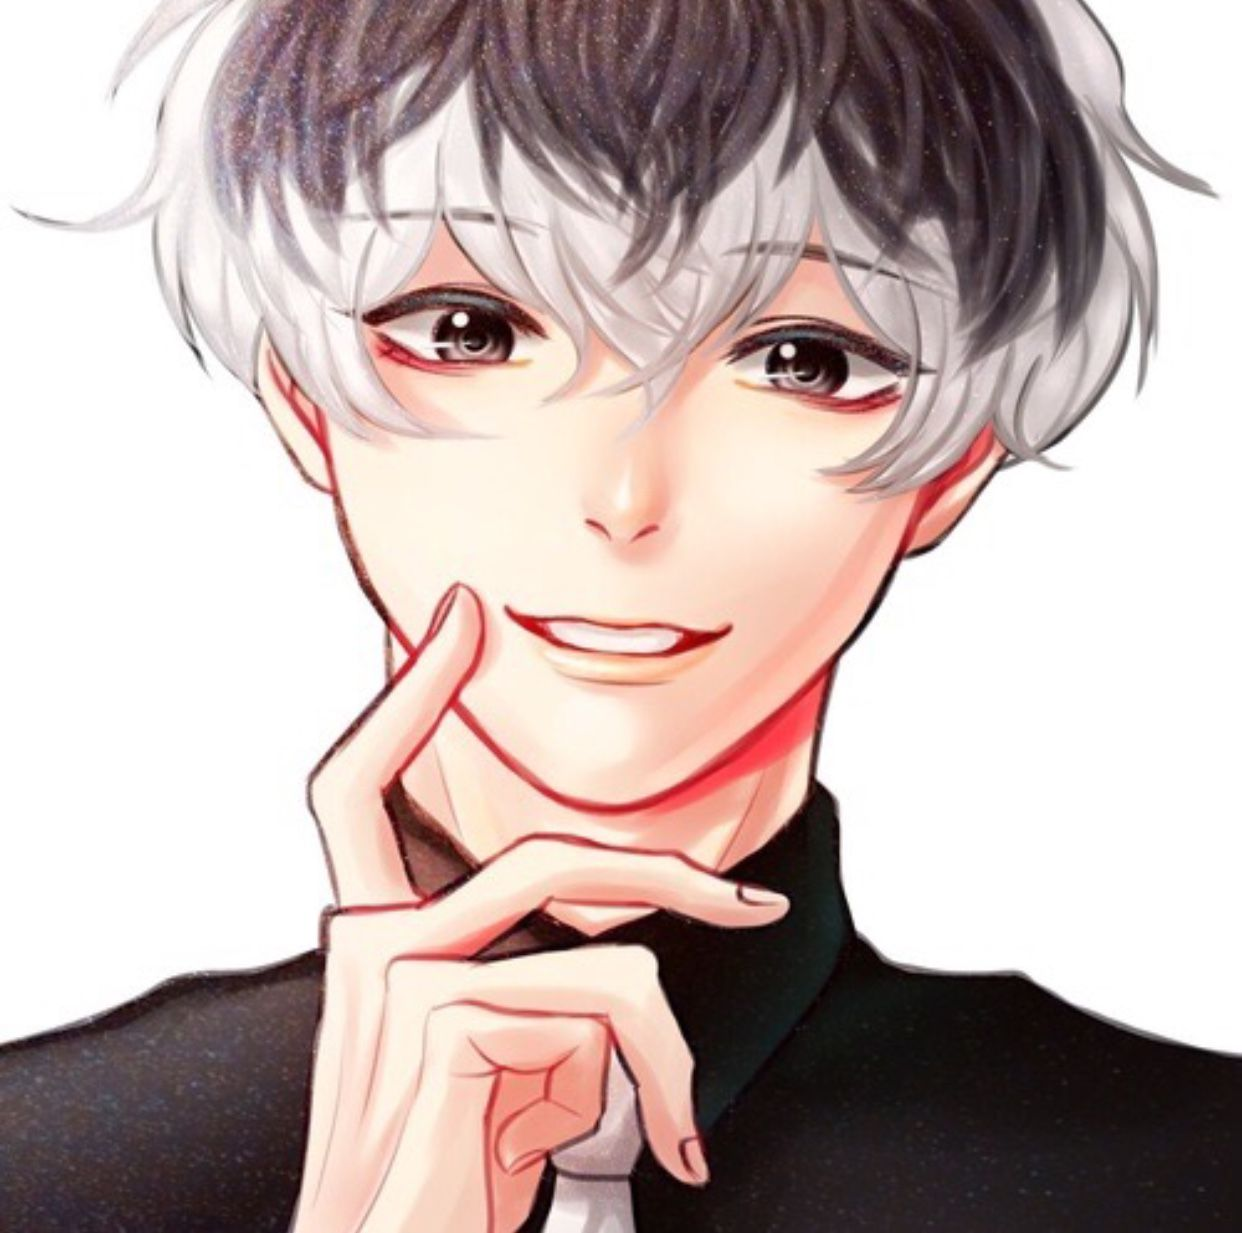 Gorgeous Ghoul😇😇😇😇💖💖💖💖💖💖   Gorgeous 2D guys